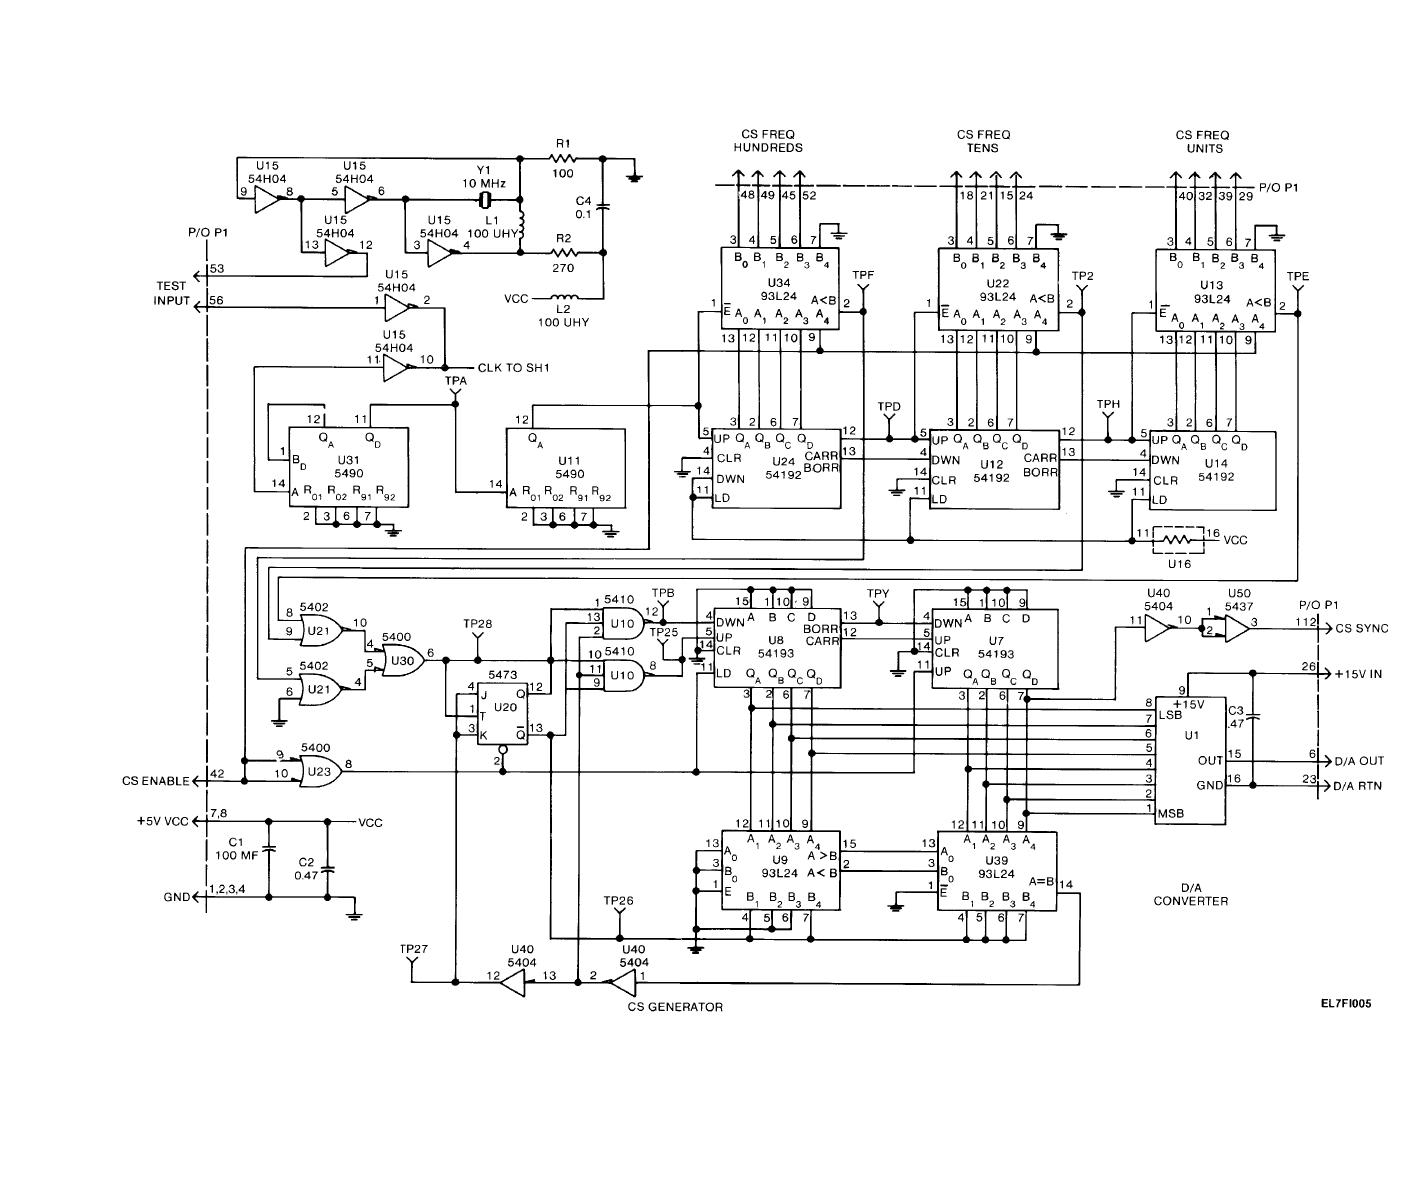 wiring diagram for pulse monitor  wiring  get free image